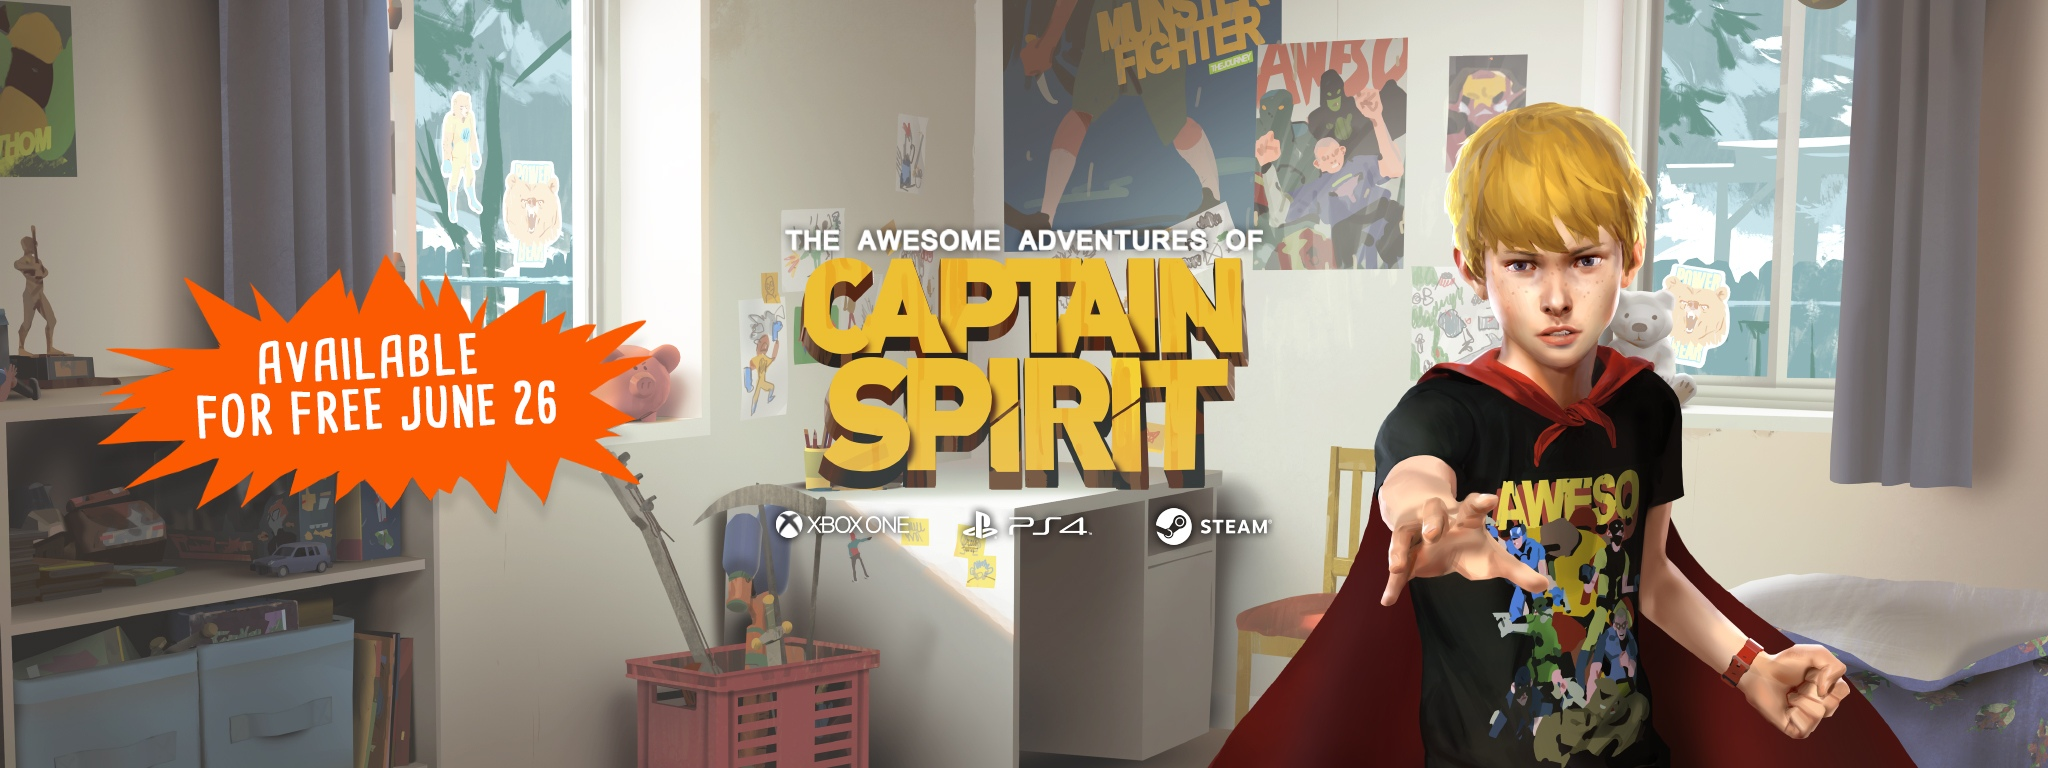 Промо-баннер The Awesome Adventures of Captain Spirit